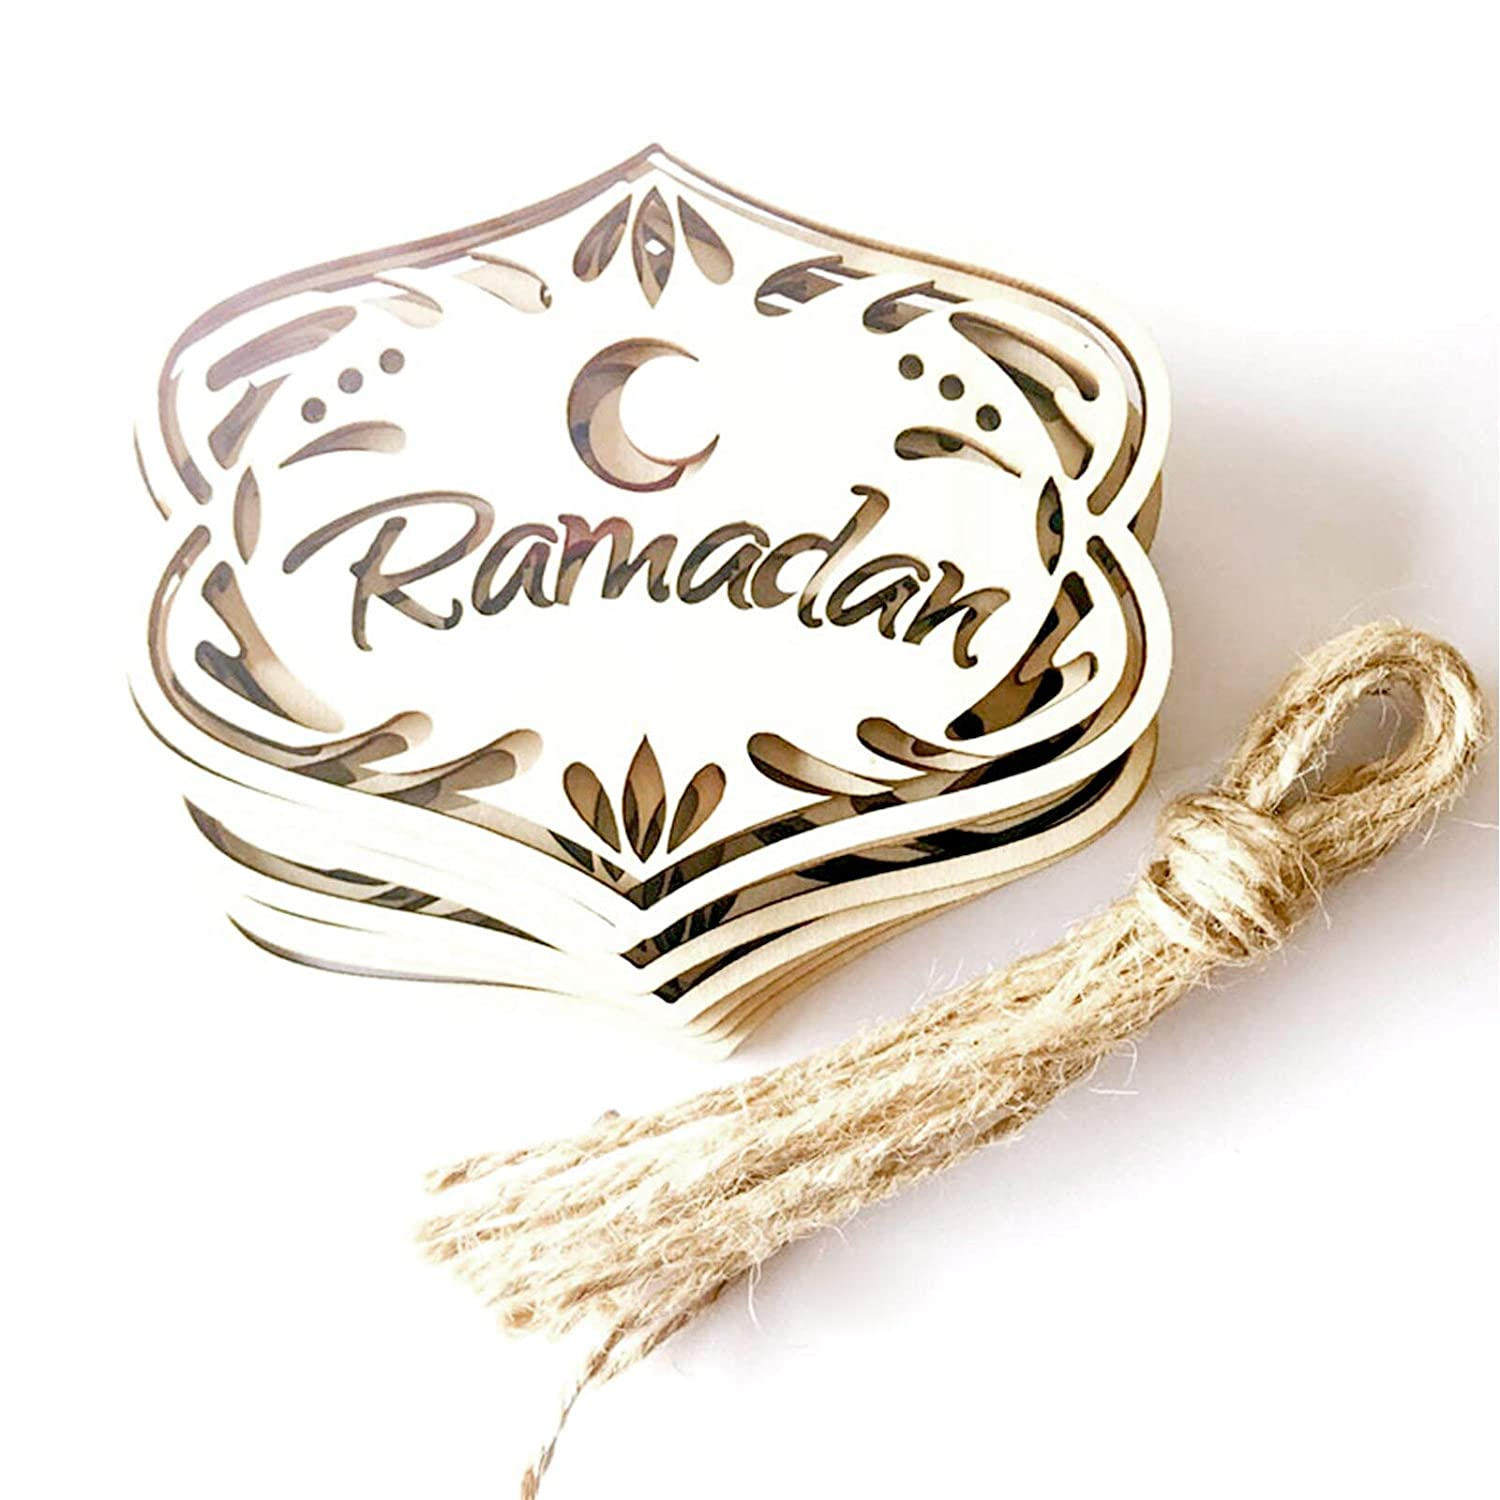 Ramadan Festival Decoration Solid Wood Uses For Home Decoration 3 Models